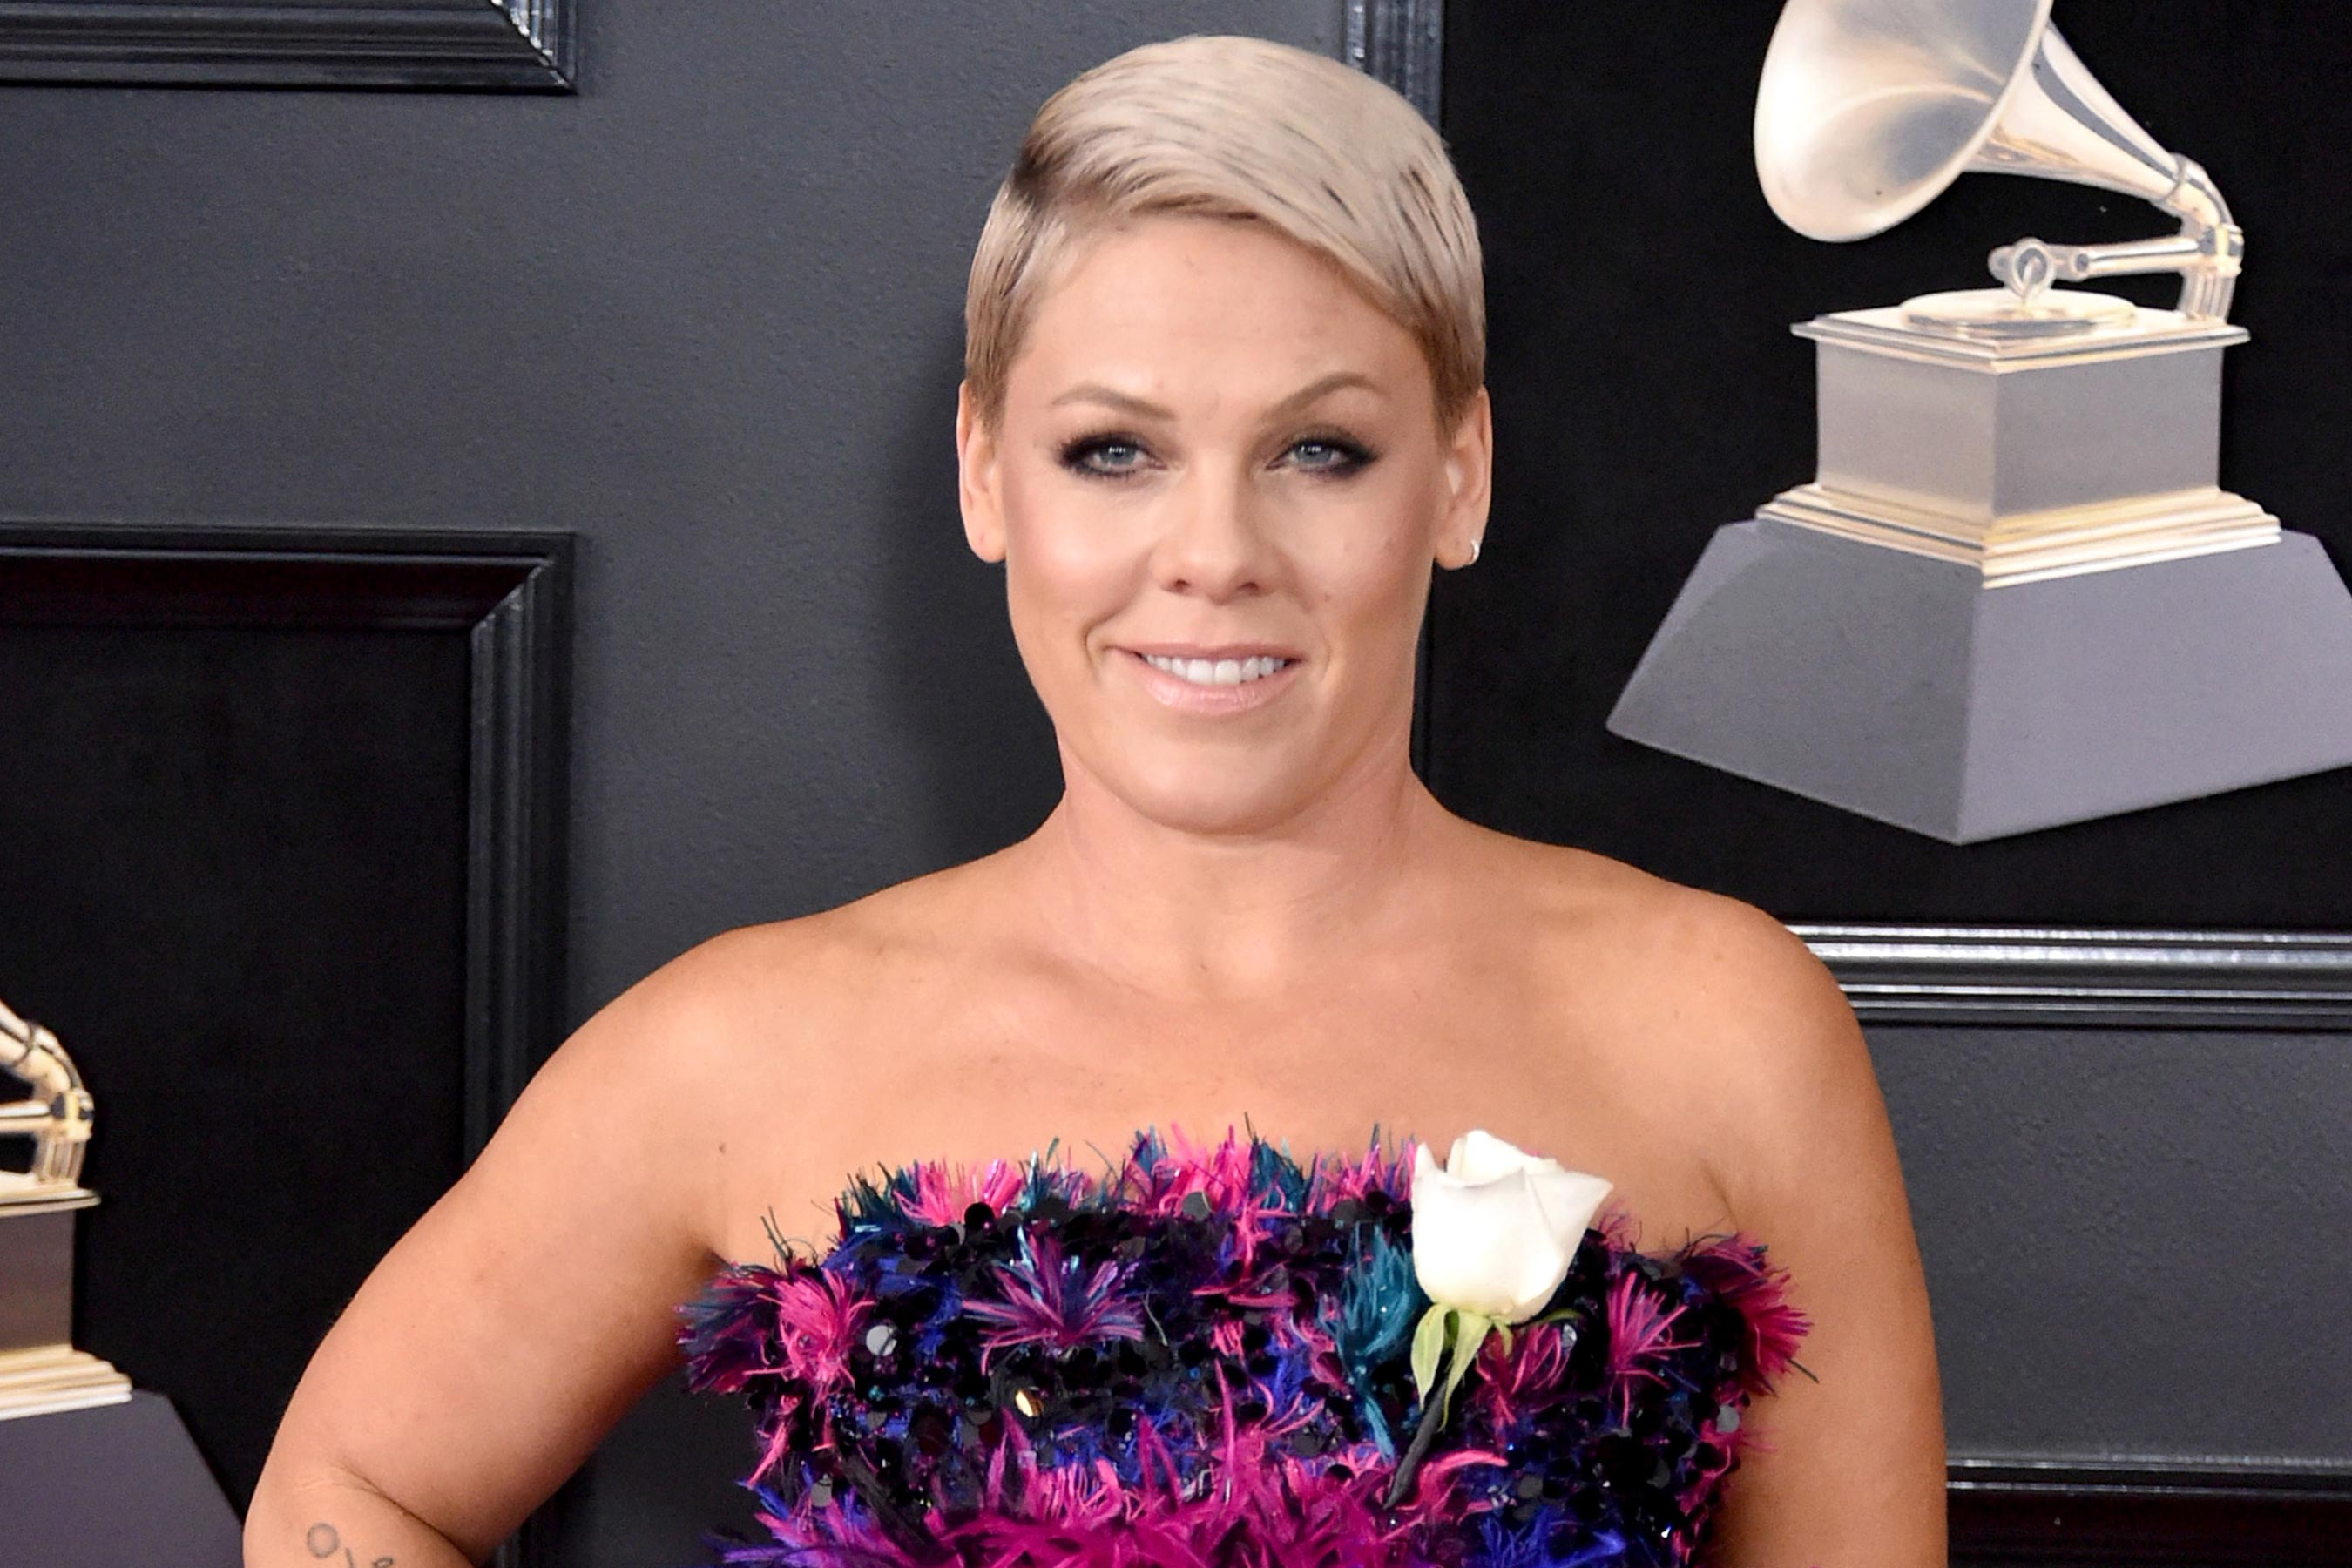 Pink fires back at Grammys president for saying women need to 'step up'